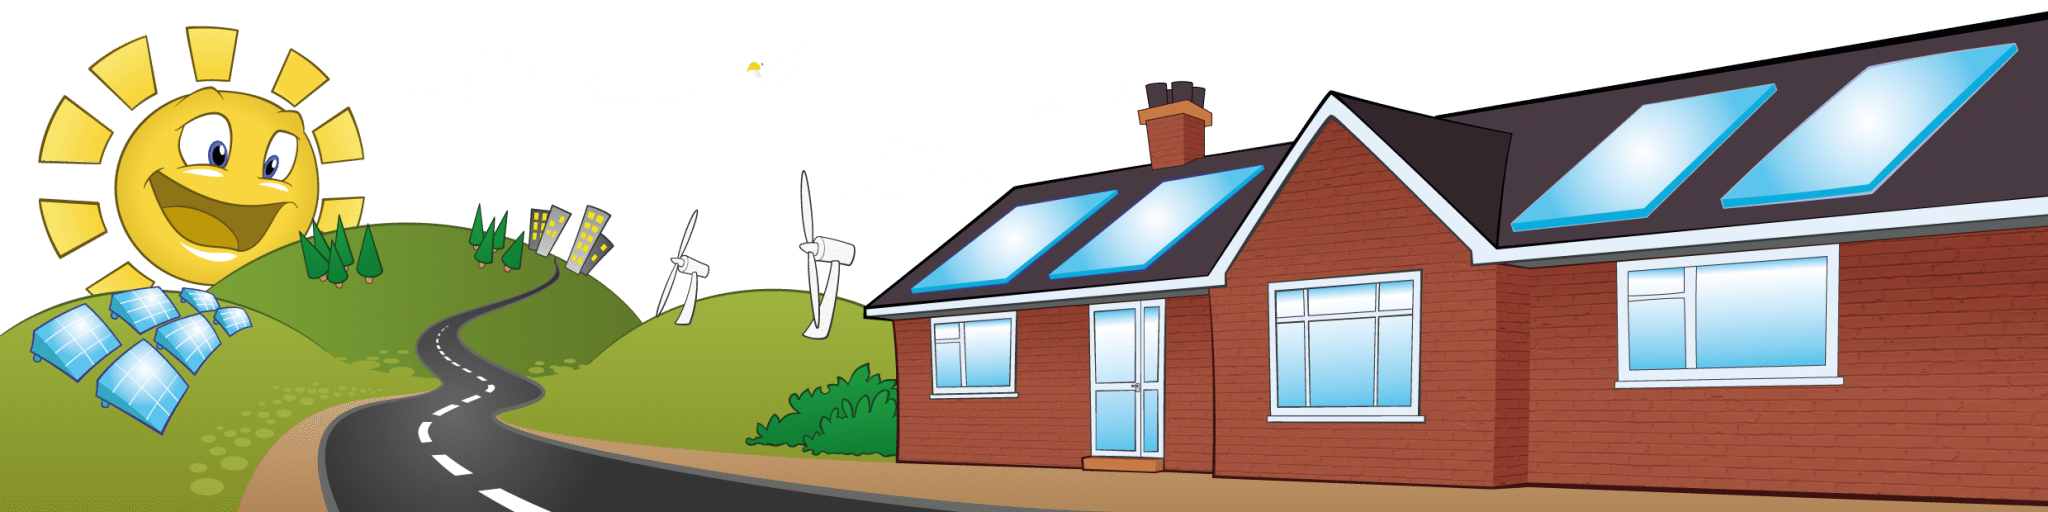 Solar Panels for Homeowners from Greenscape Energy in Ipswich